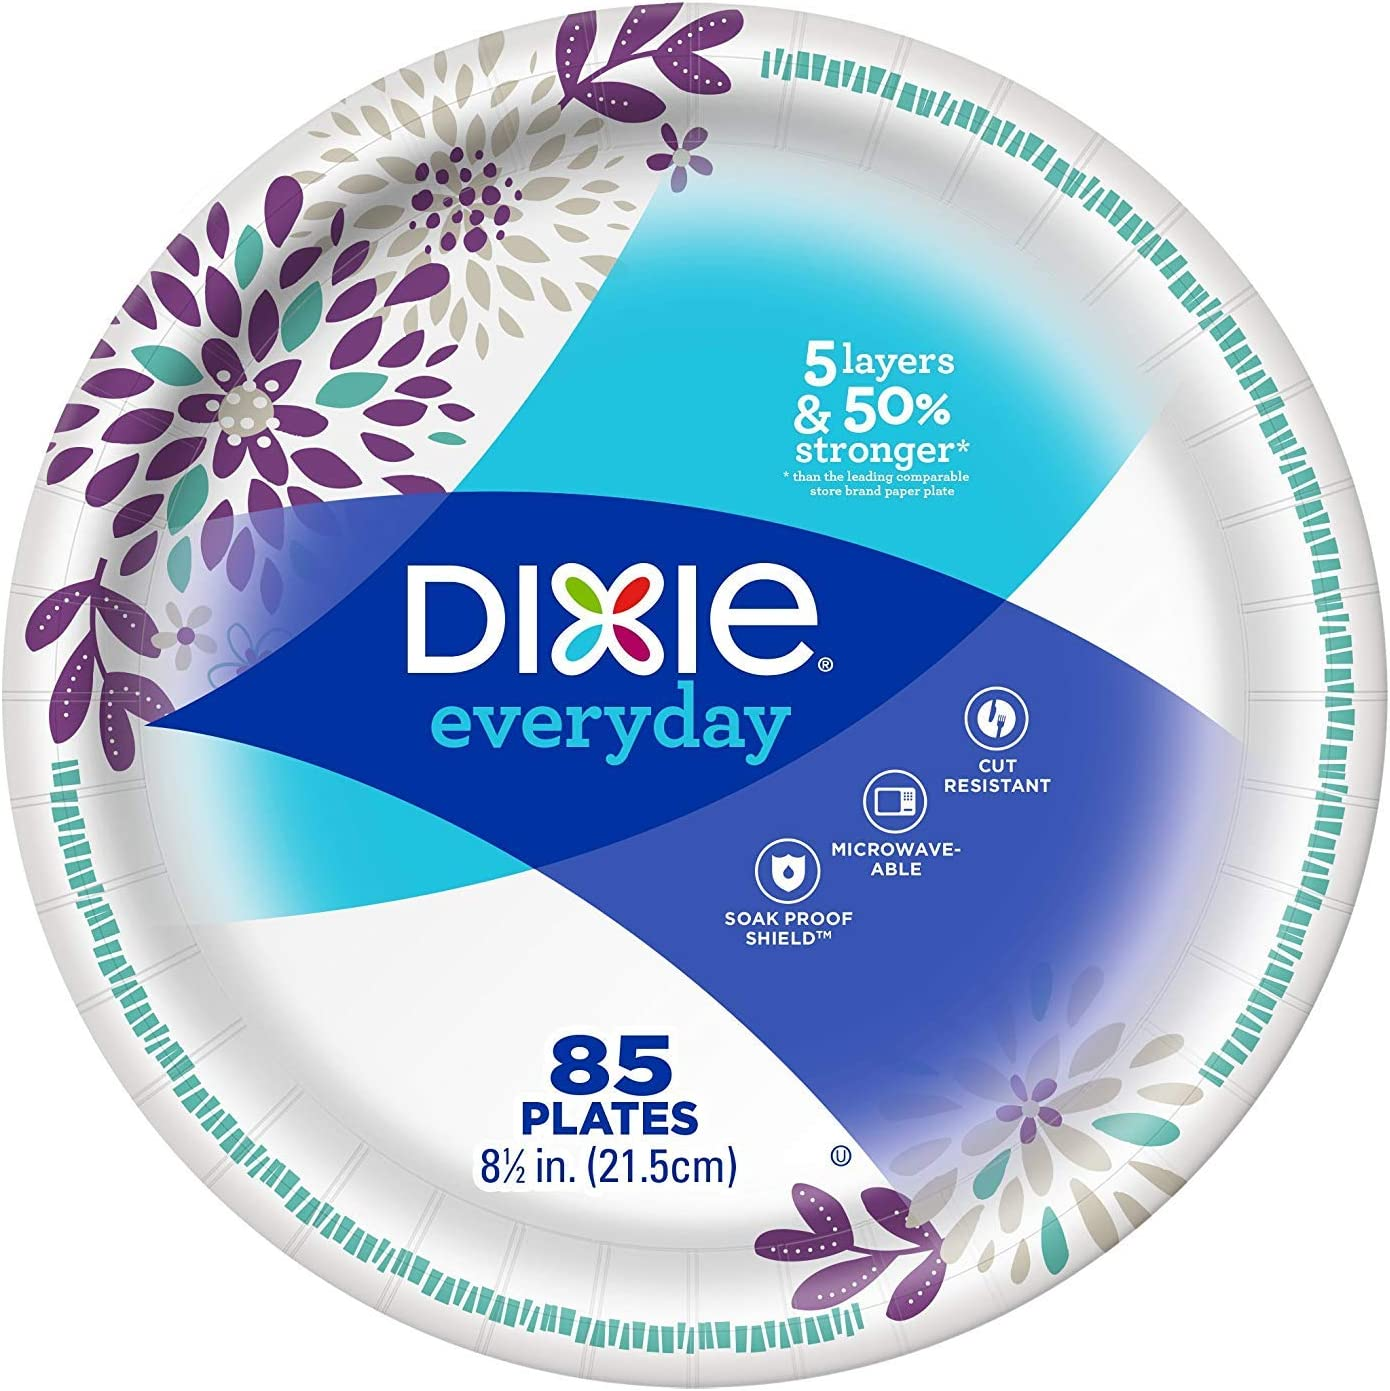 Family Pack 95 count Dixie 8.5 inch Plates